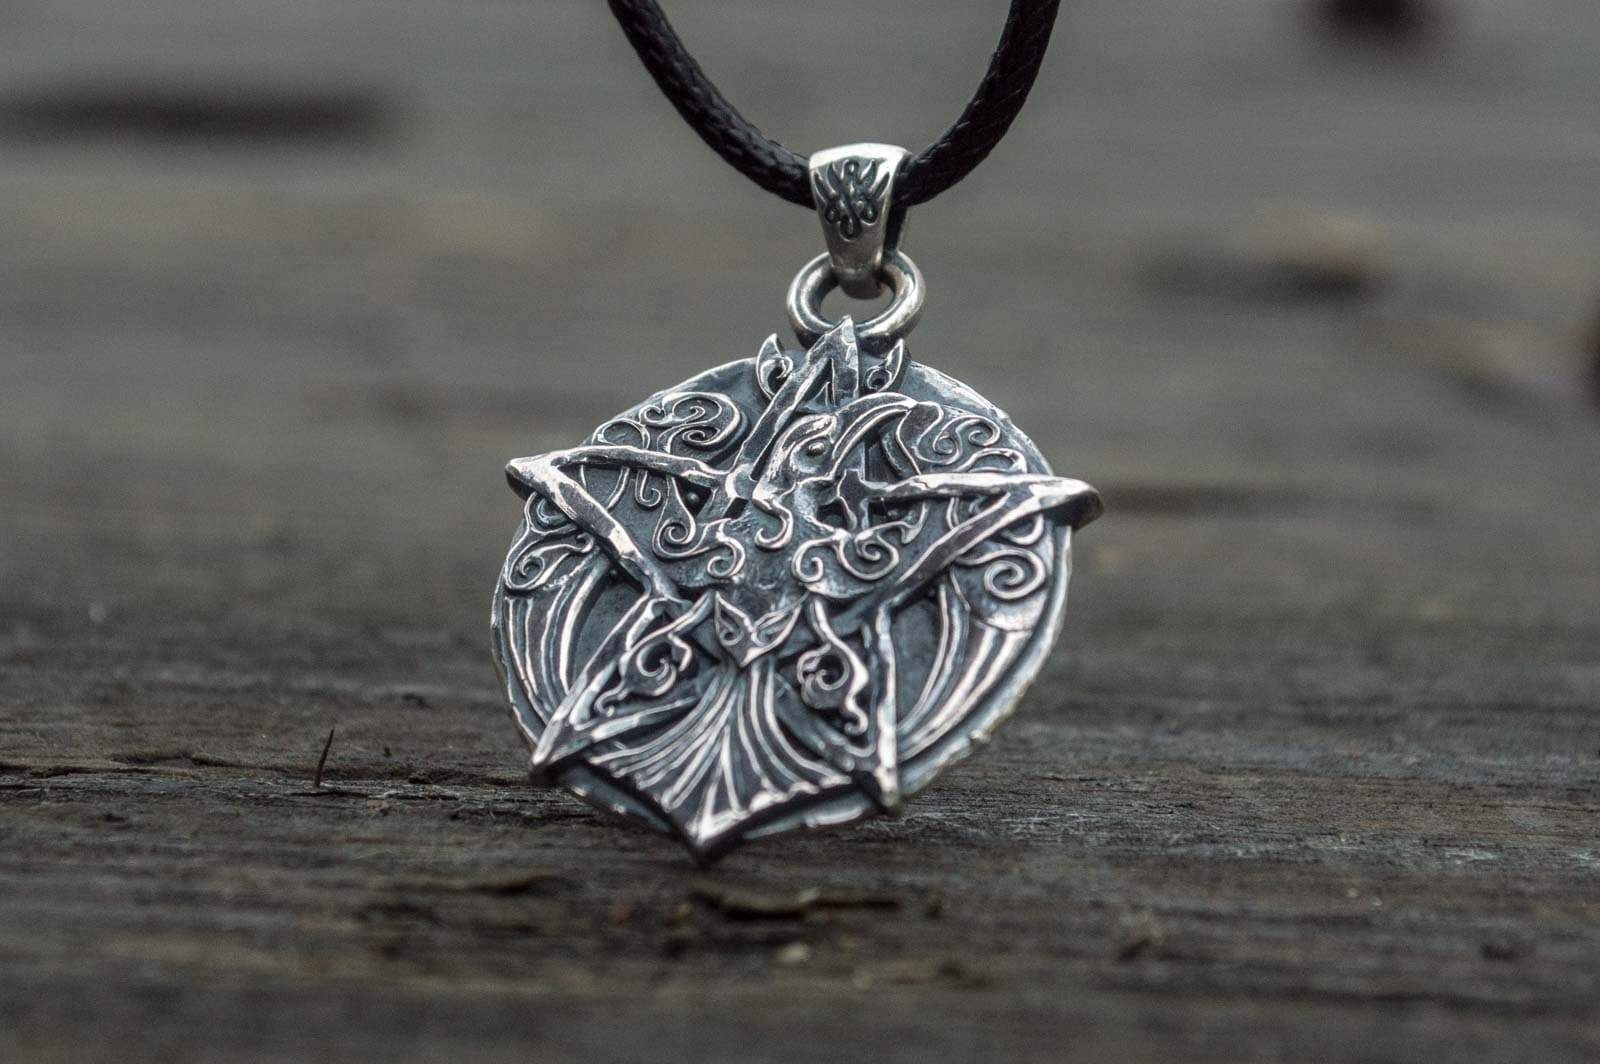 Pendants & Necklaces Wiccan Raven on Pentagram with Ornament Sterling Silver Crown Pendant Ancient Treasures Ancientreasures Viking Odin Thor Mjolnir Celtic Ancient Egypt Norse Norse Mythology